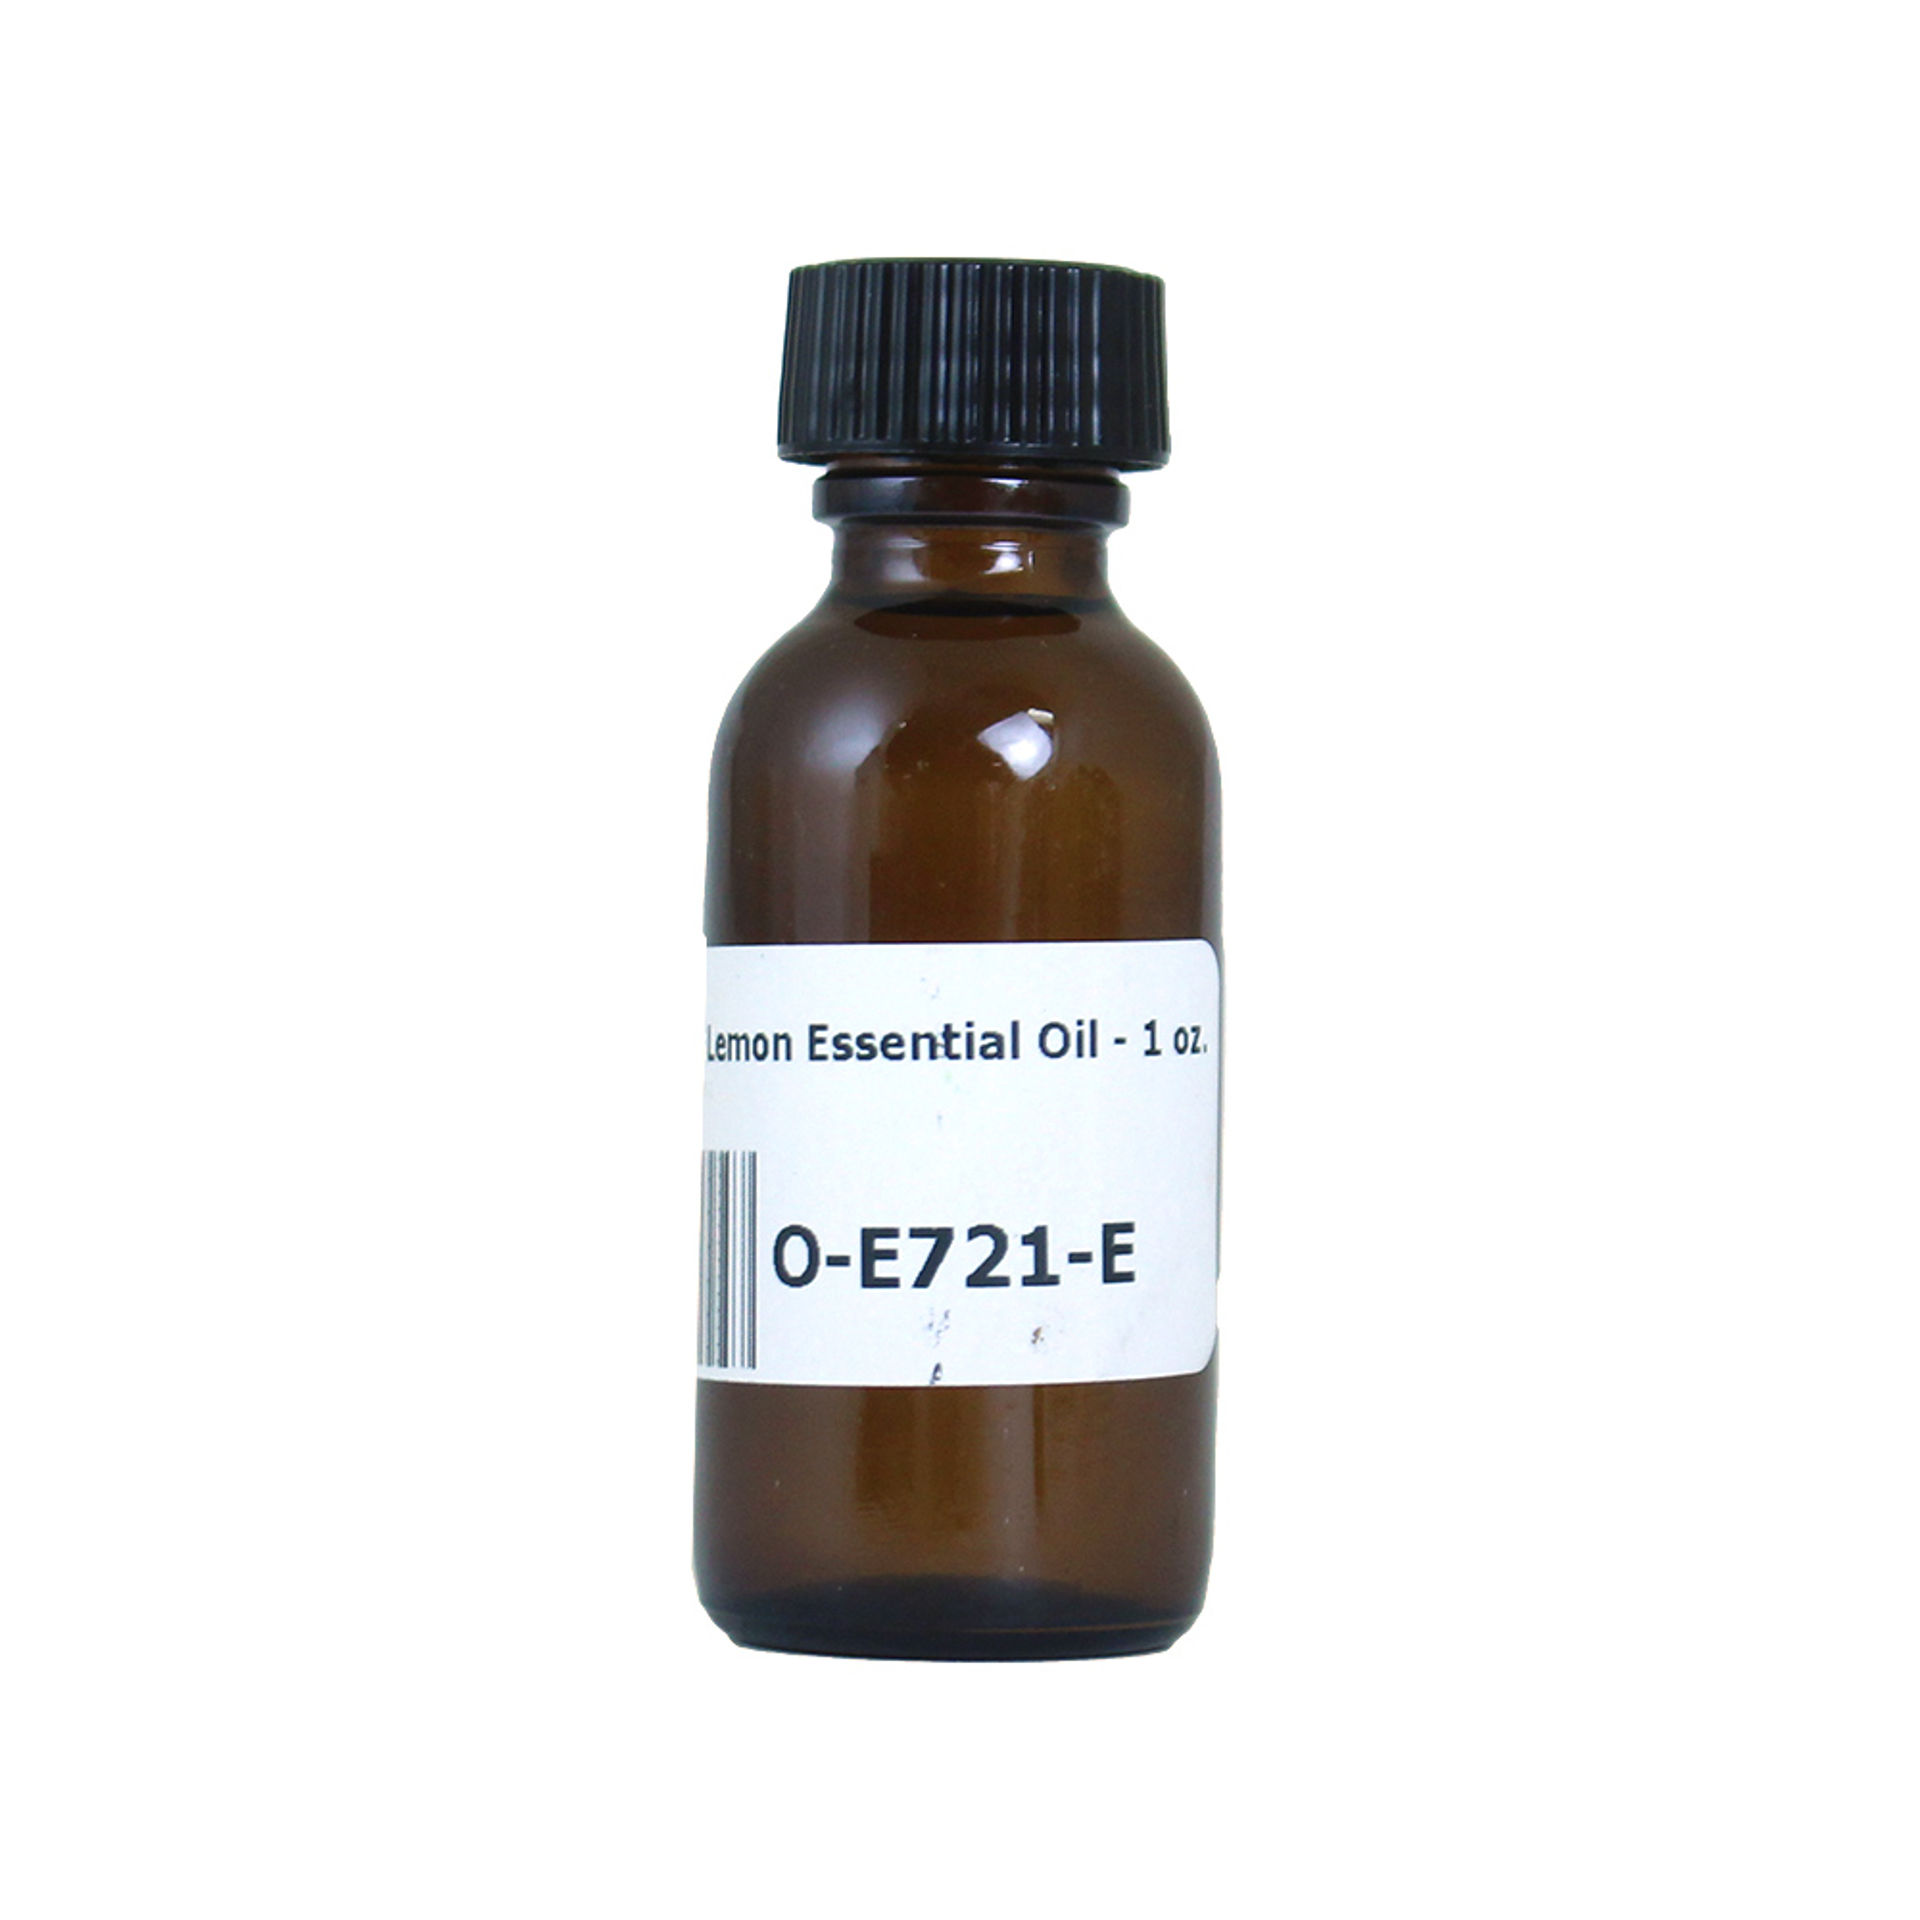 Picture of Eucalyptus Lemon Essential Oil - 1 oz.